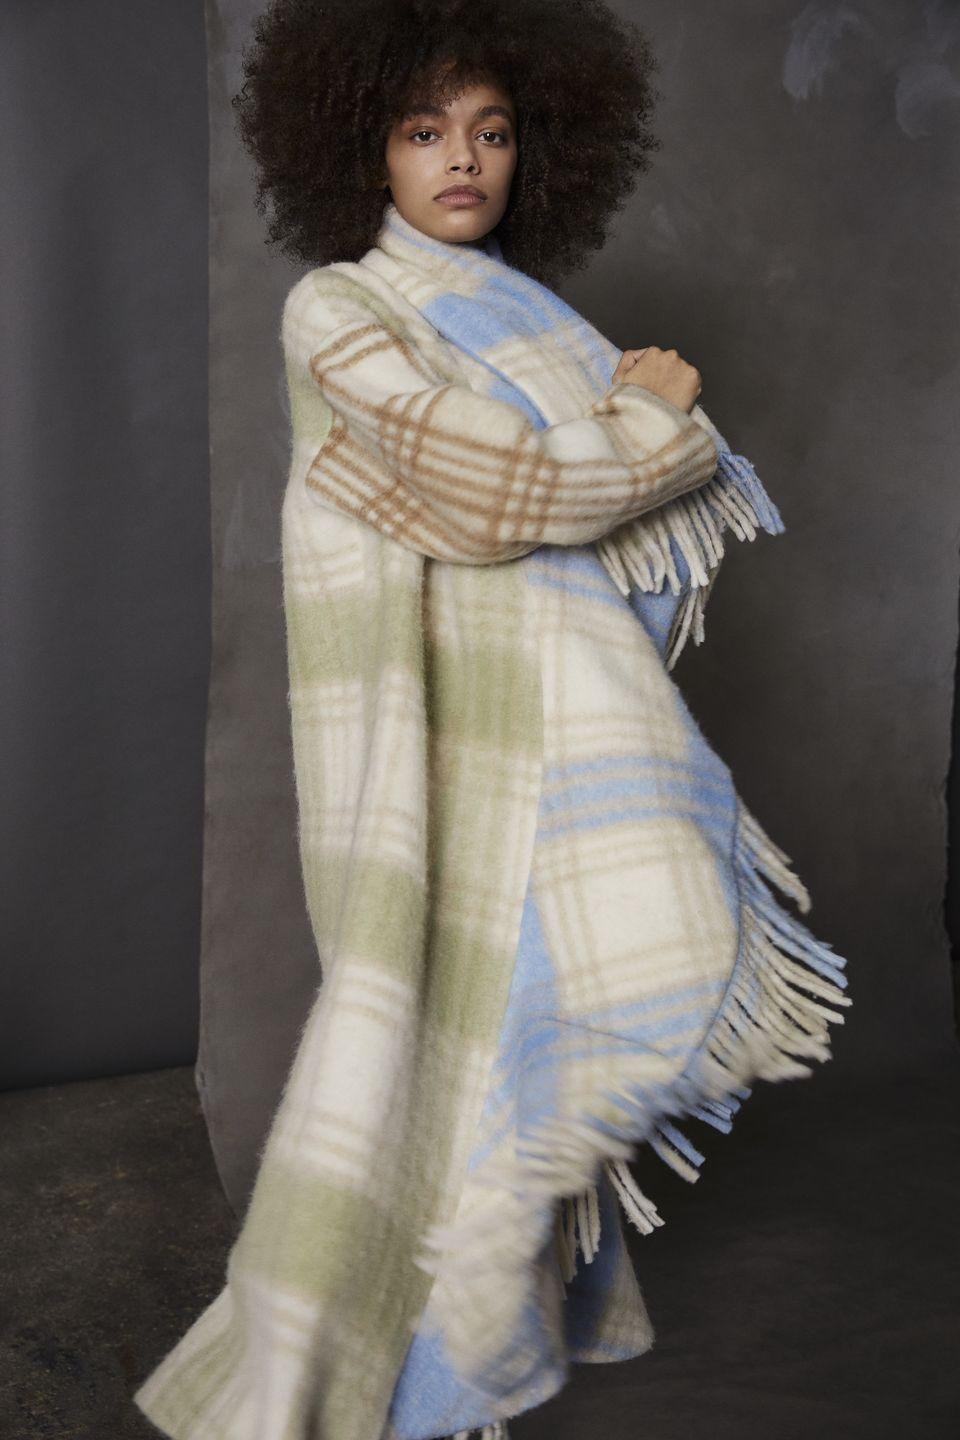 <p><em>Coziness</em> formato plaid in nuovi colori moda: <strong>Cinq à Sept </strong><strong>Autunno Inverno 2021 2022</strong>.</p>